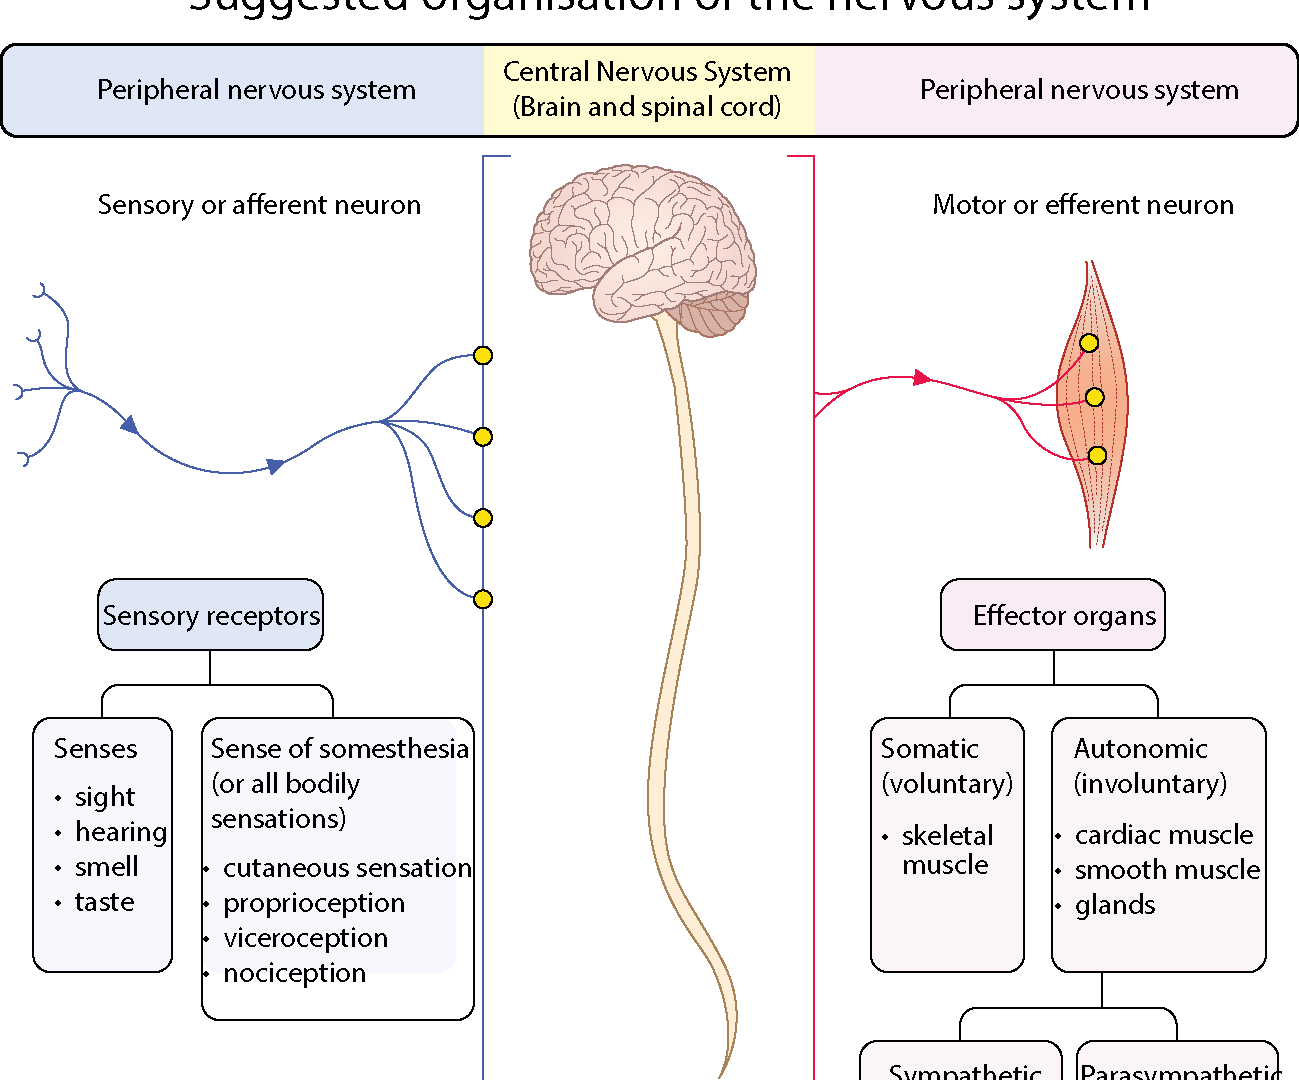 Suggested organisation of the nervous system